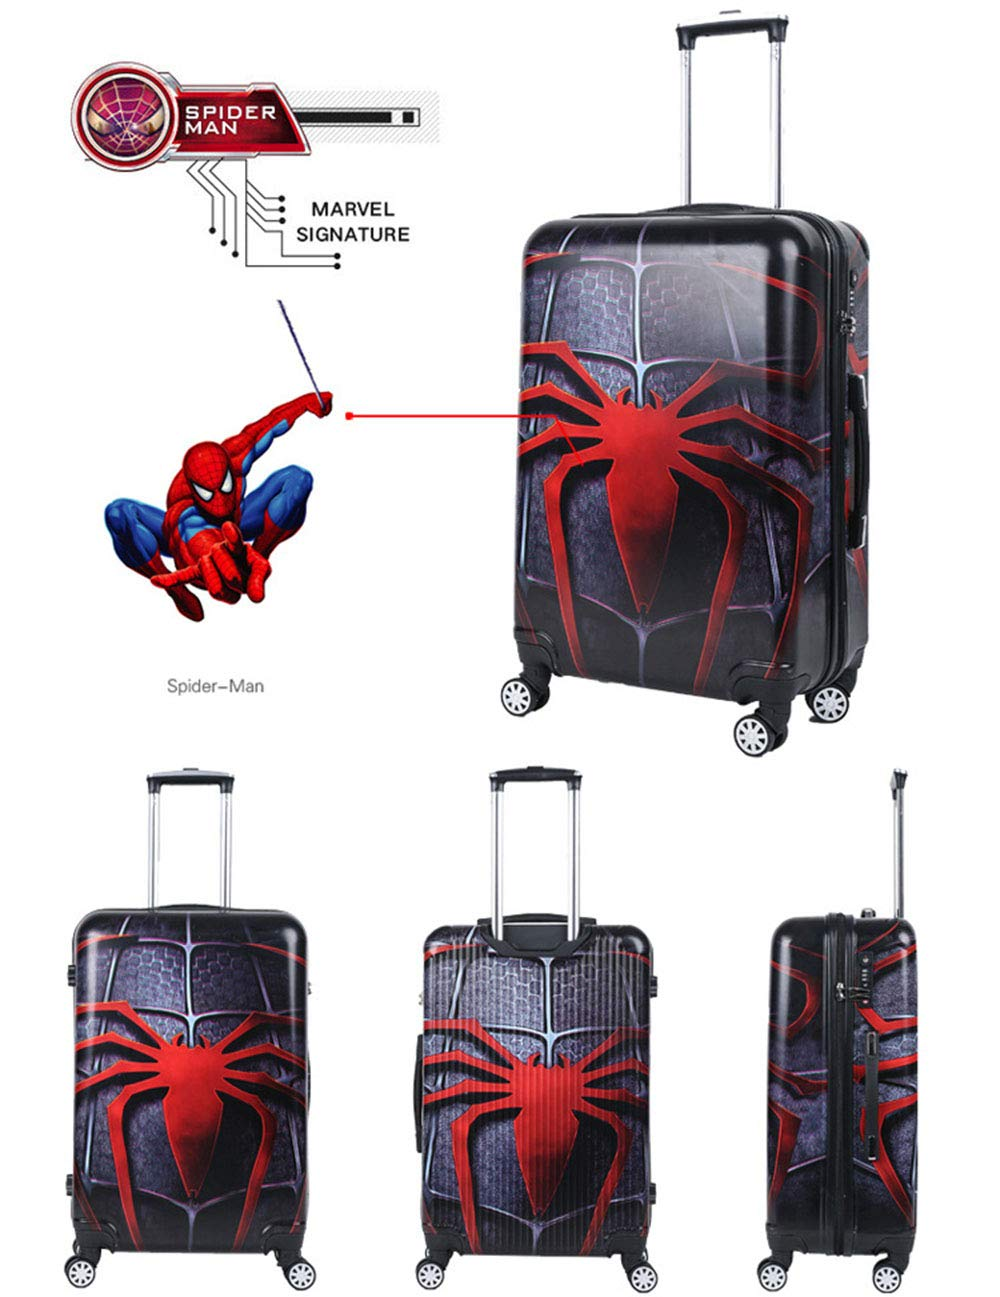 Spiderman luggage Trolley Case Luggage Case Suitcase Spinner Carry-On Luggage Hardshell Exterior Sleek Boarding Bag by HongHe (Image #3)